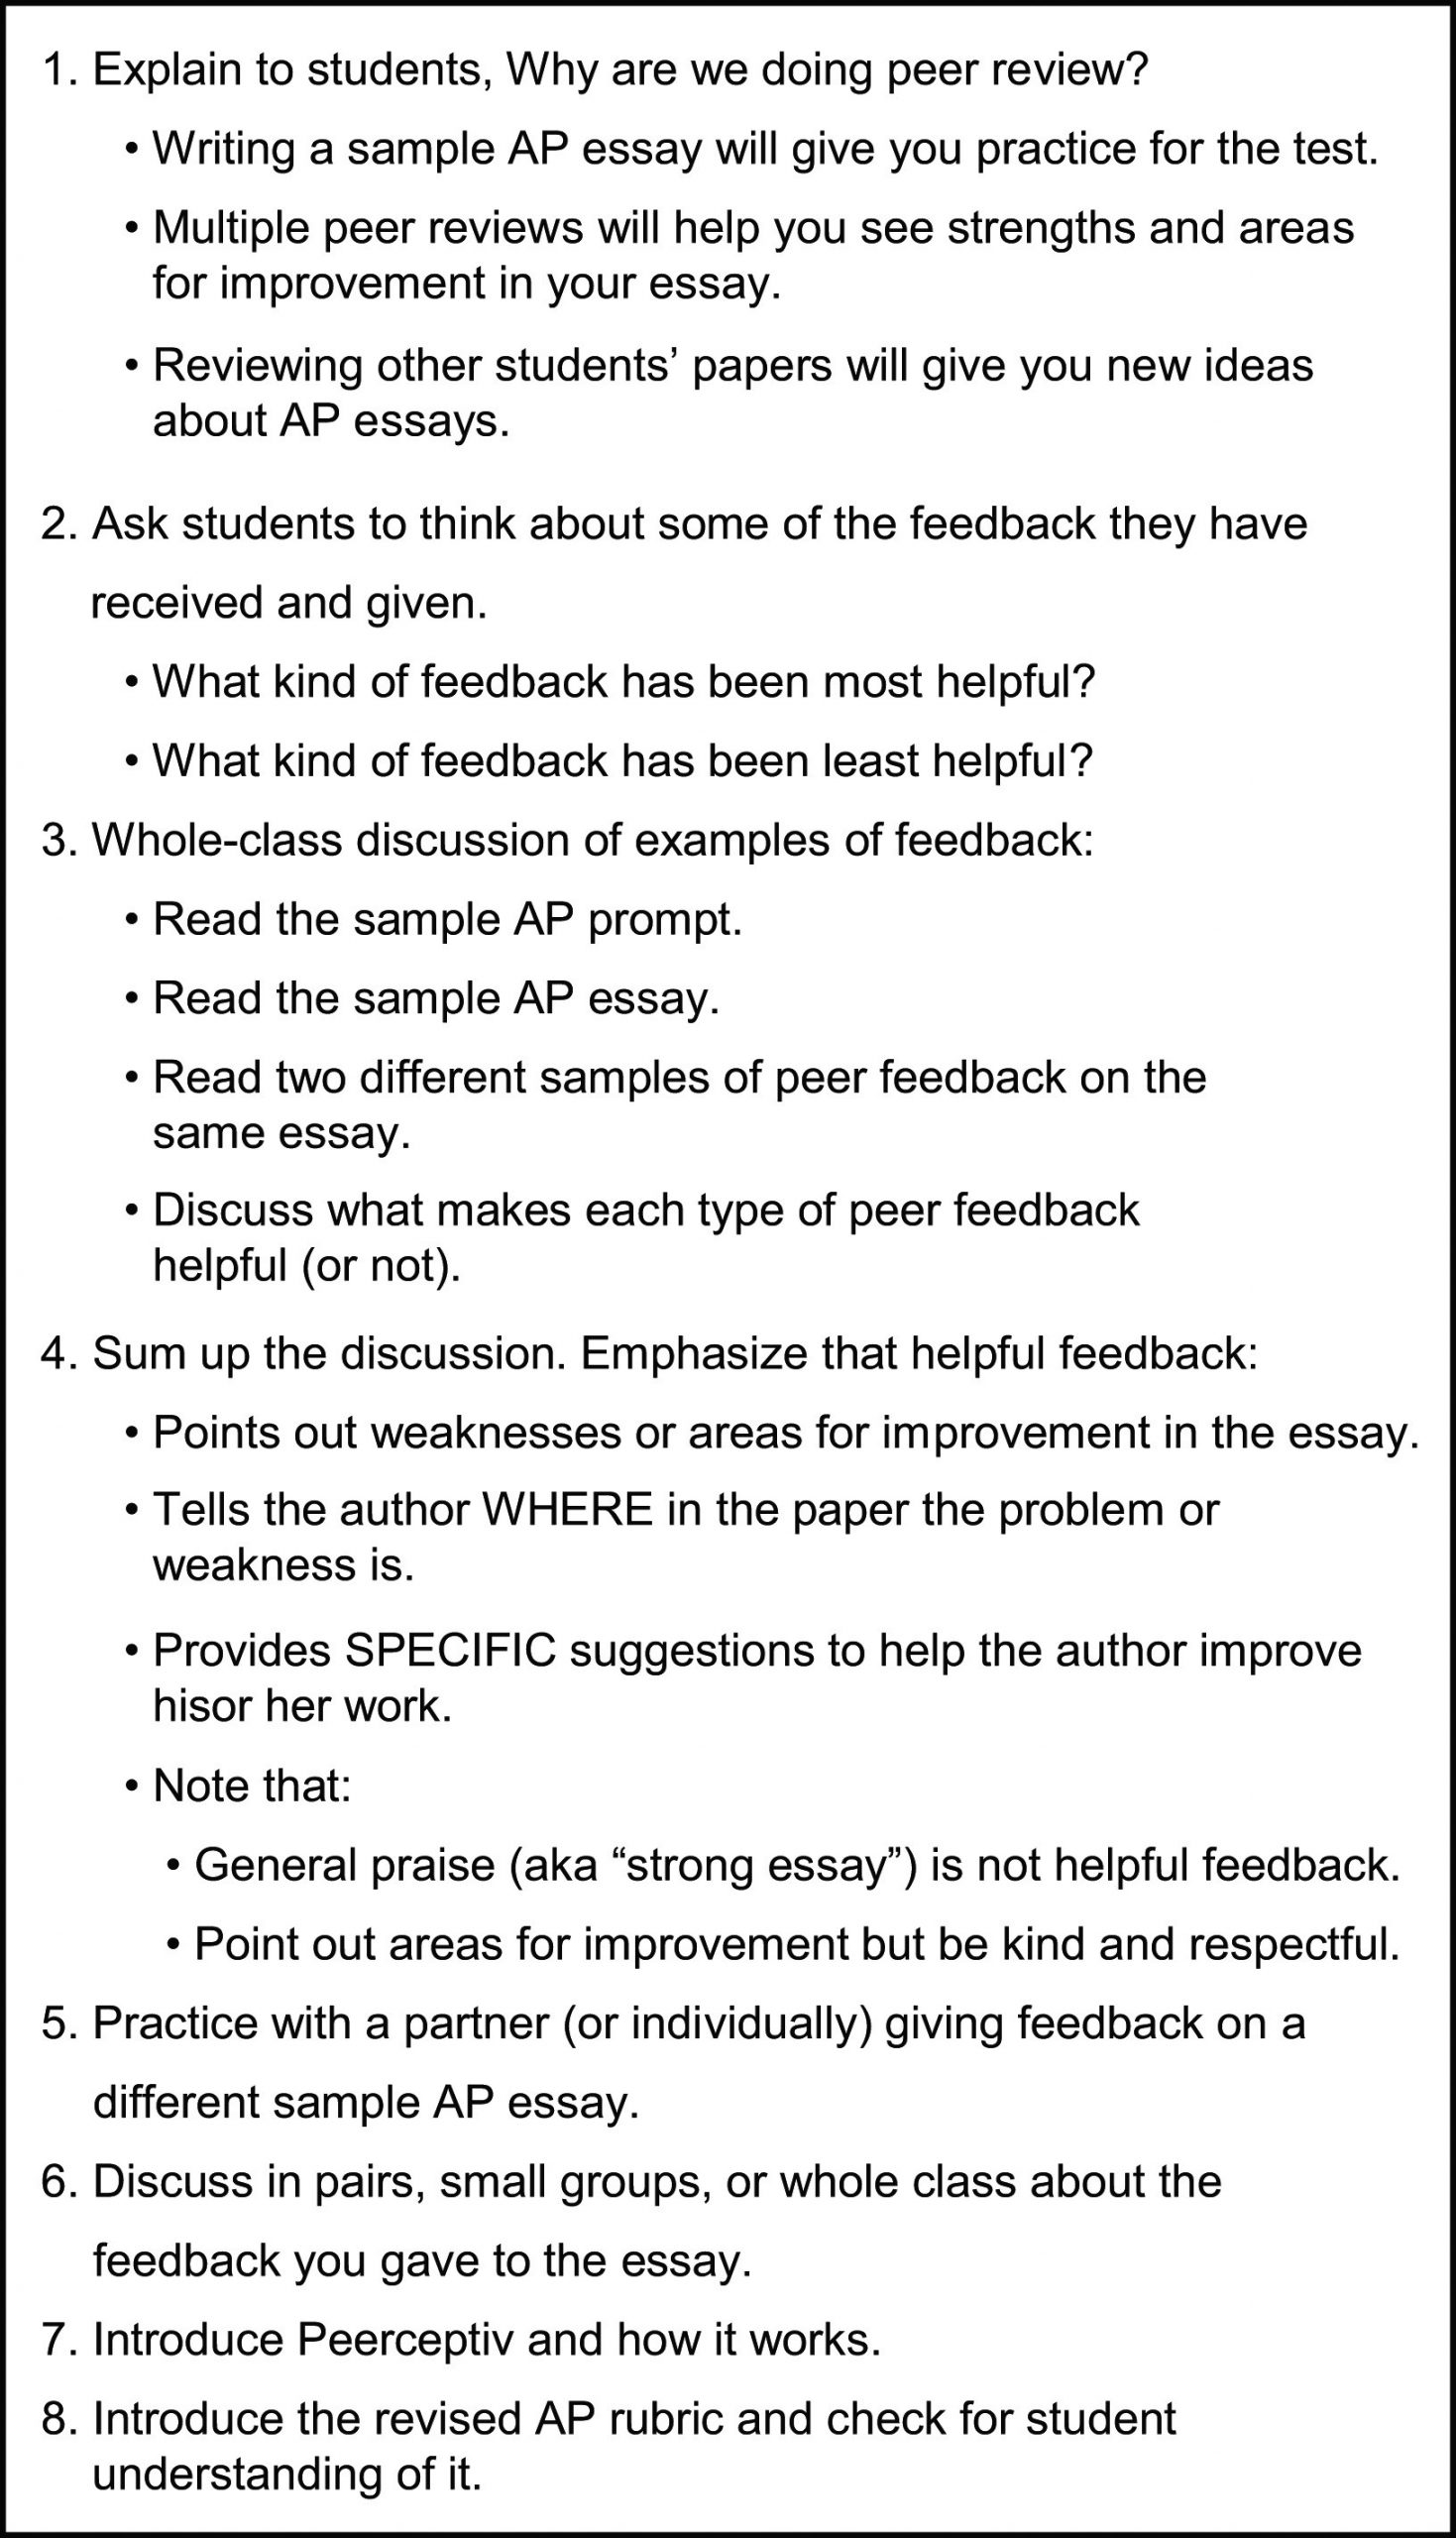 Peer Review Worksheet High School the Reliability and Validity Of Peer Review Of Writing In